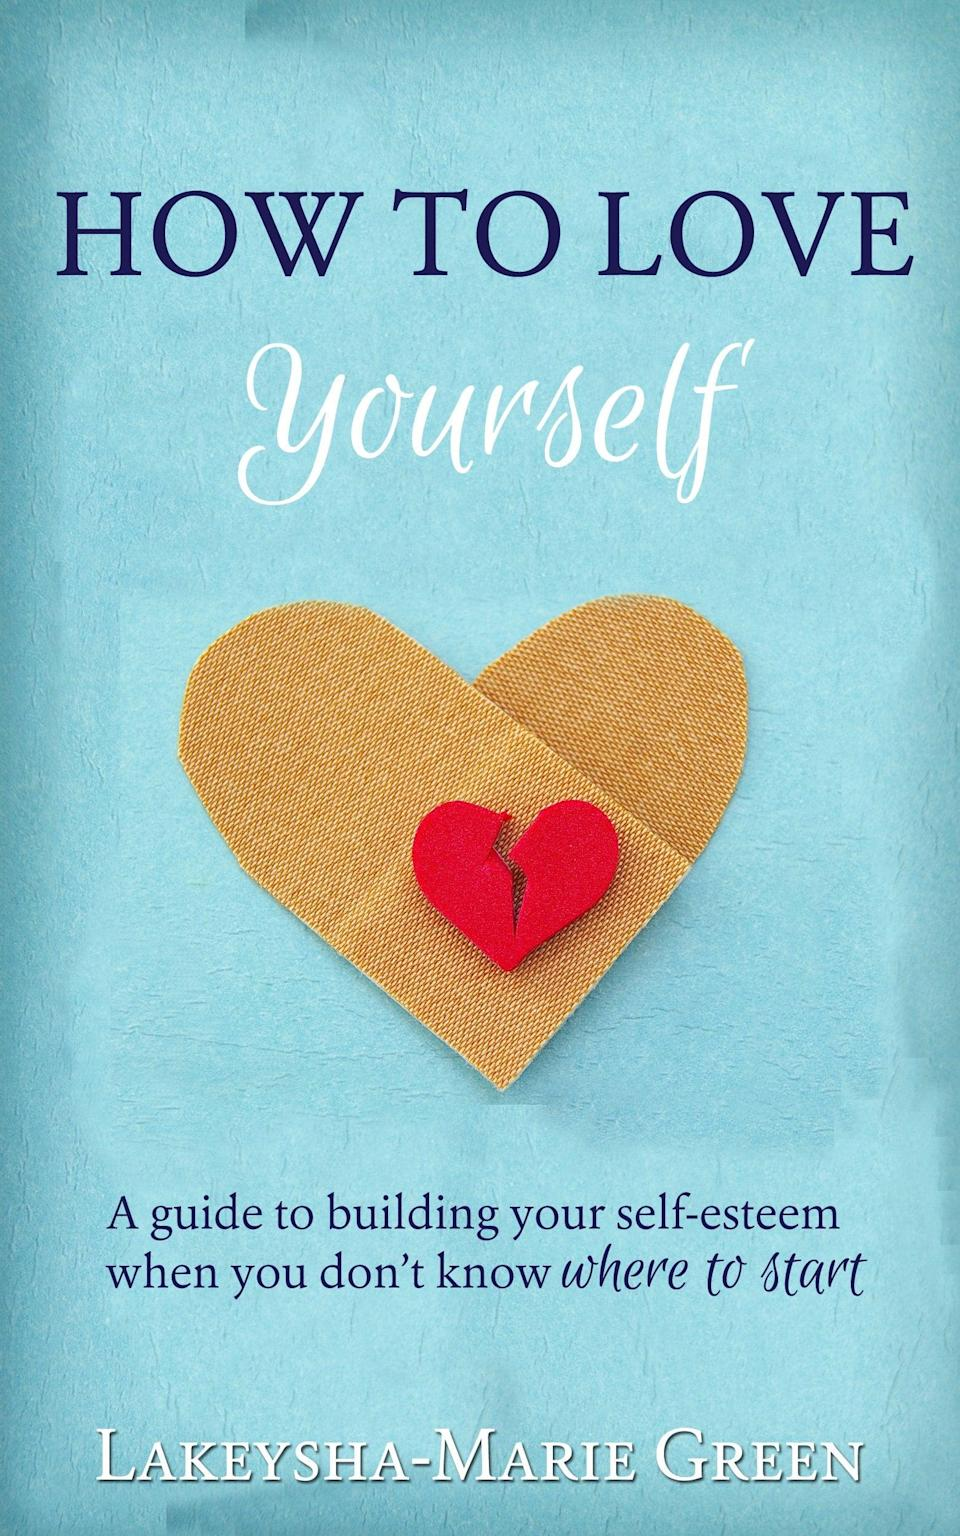 <p>True happiness comes from within - Lakeysha-Marie Green reaffirms this notion in her book <span>How to Love Yourself</span>, which provides simple tips on gaining self-esteem when you don't even know where to begin. </p>